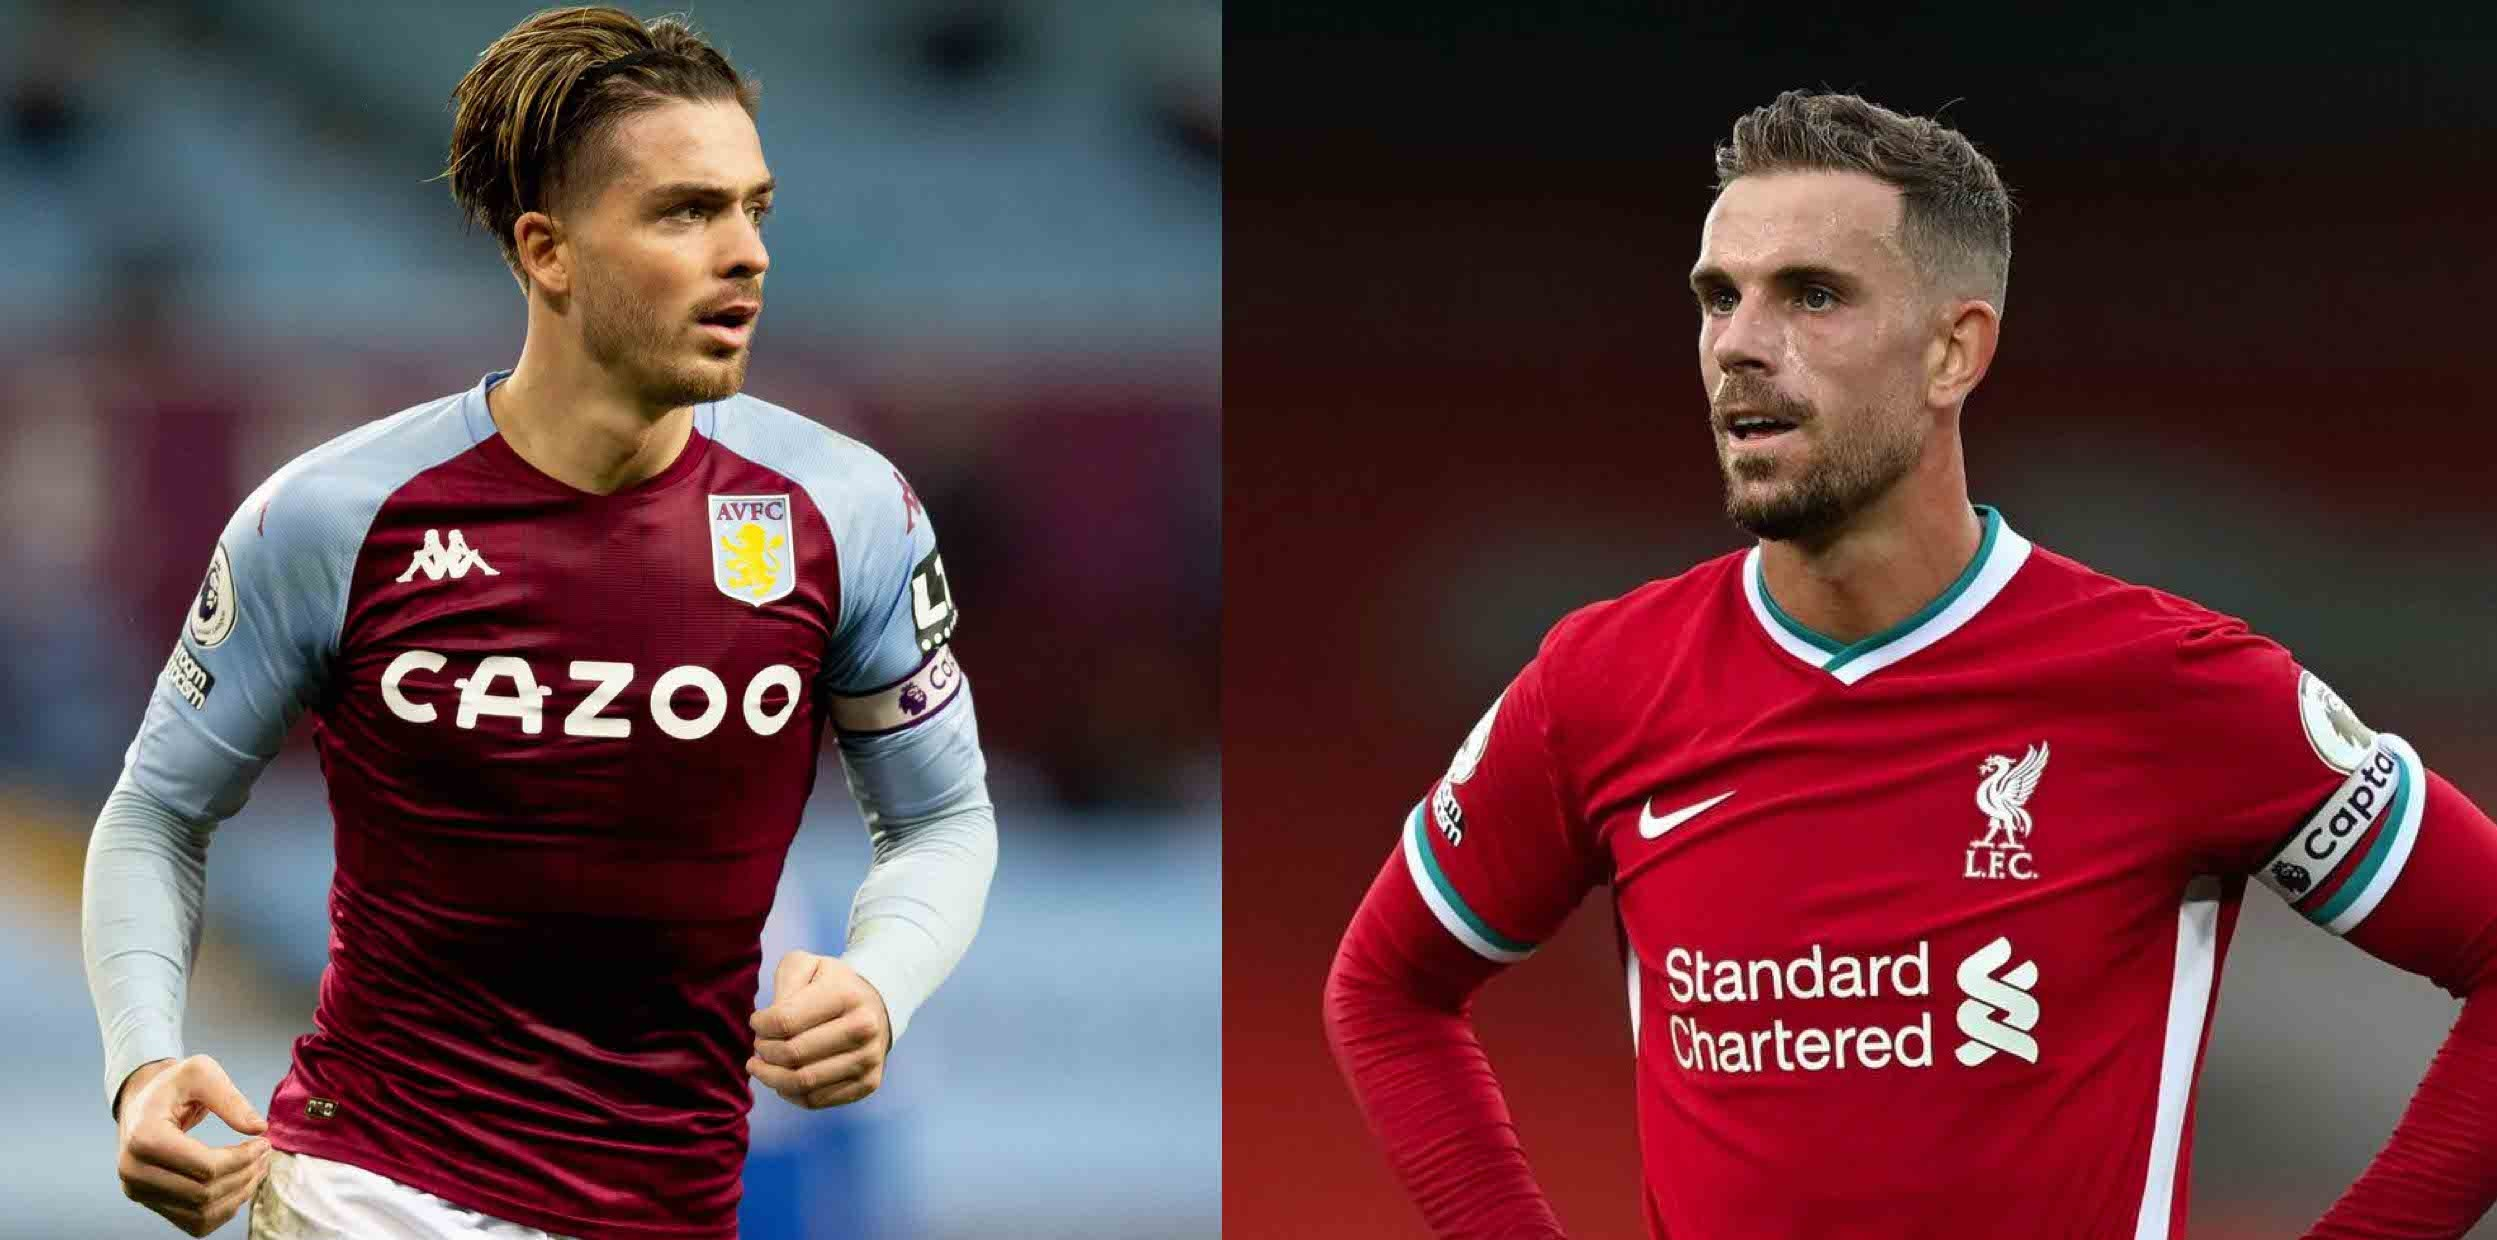 Grealish waxes lyrical about Henderson & how the LFC star helped him 'grow up'